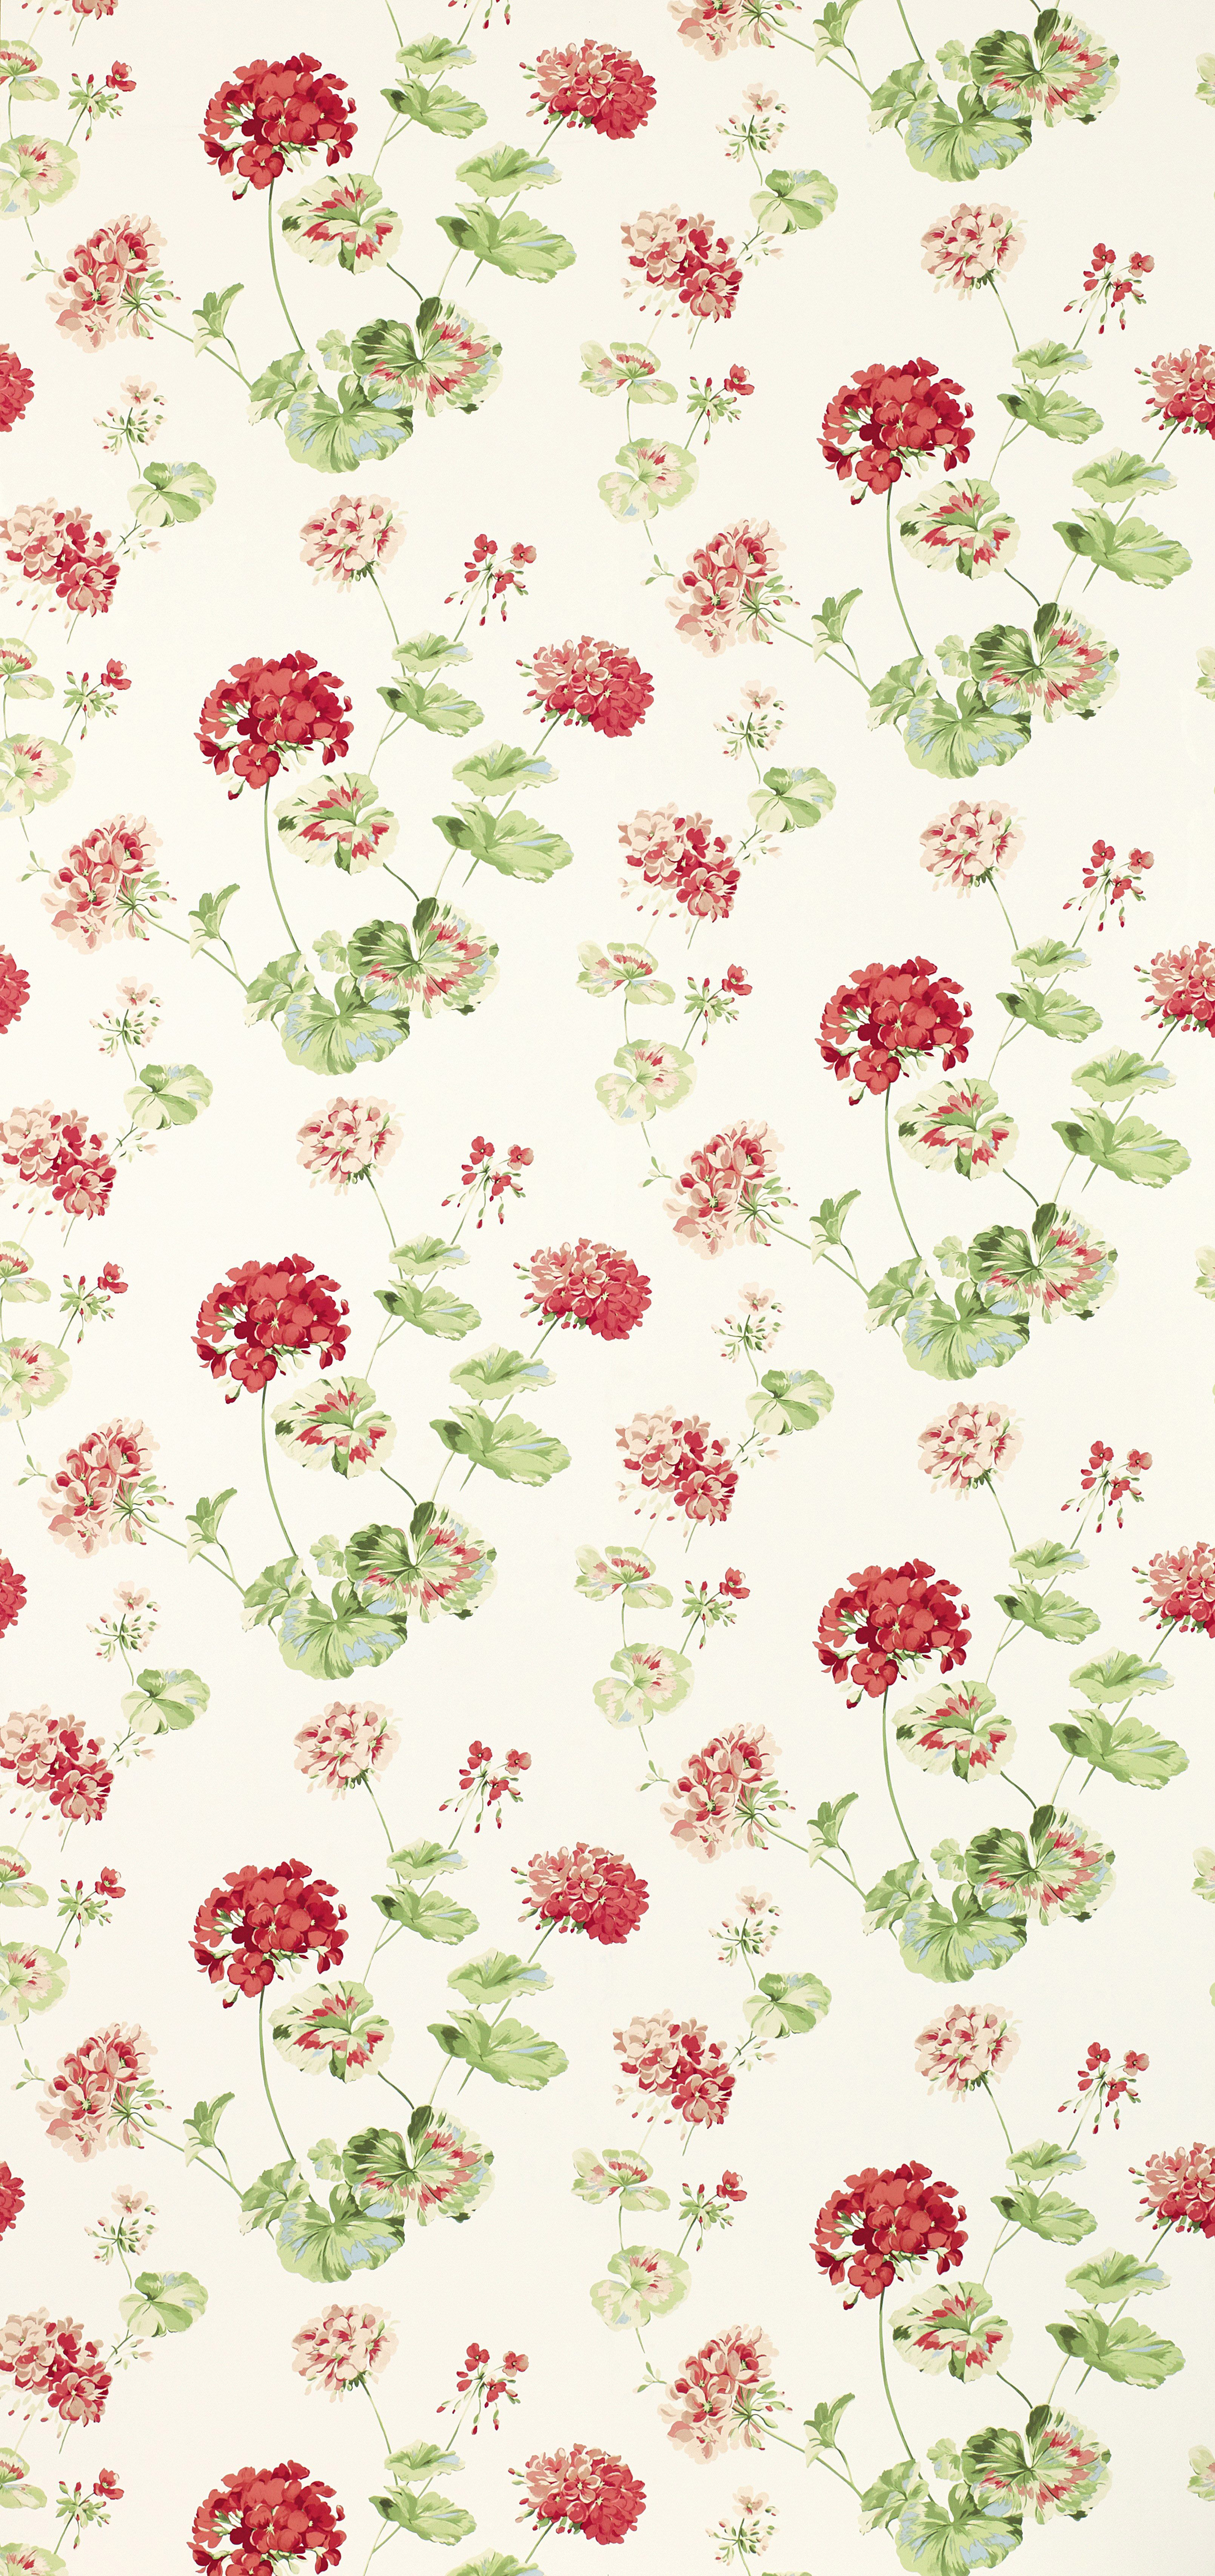 Geranium Pale Cranberry From The Laura Ashley Wallpaper Collection